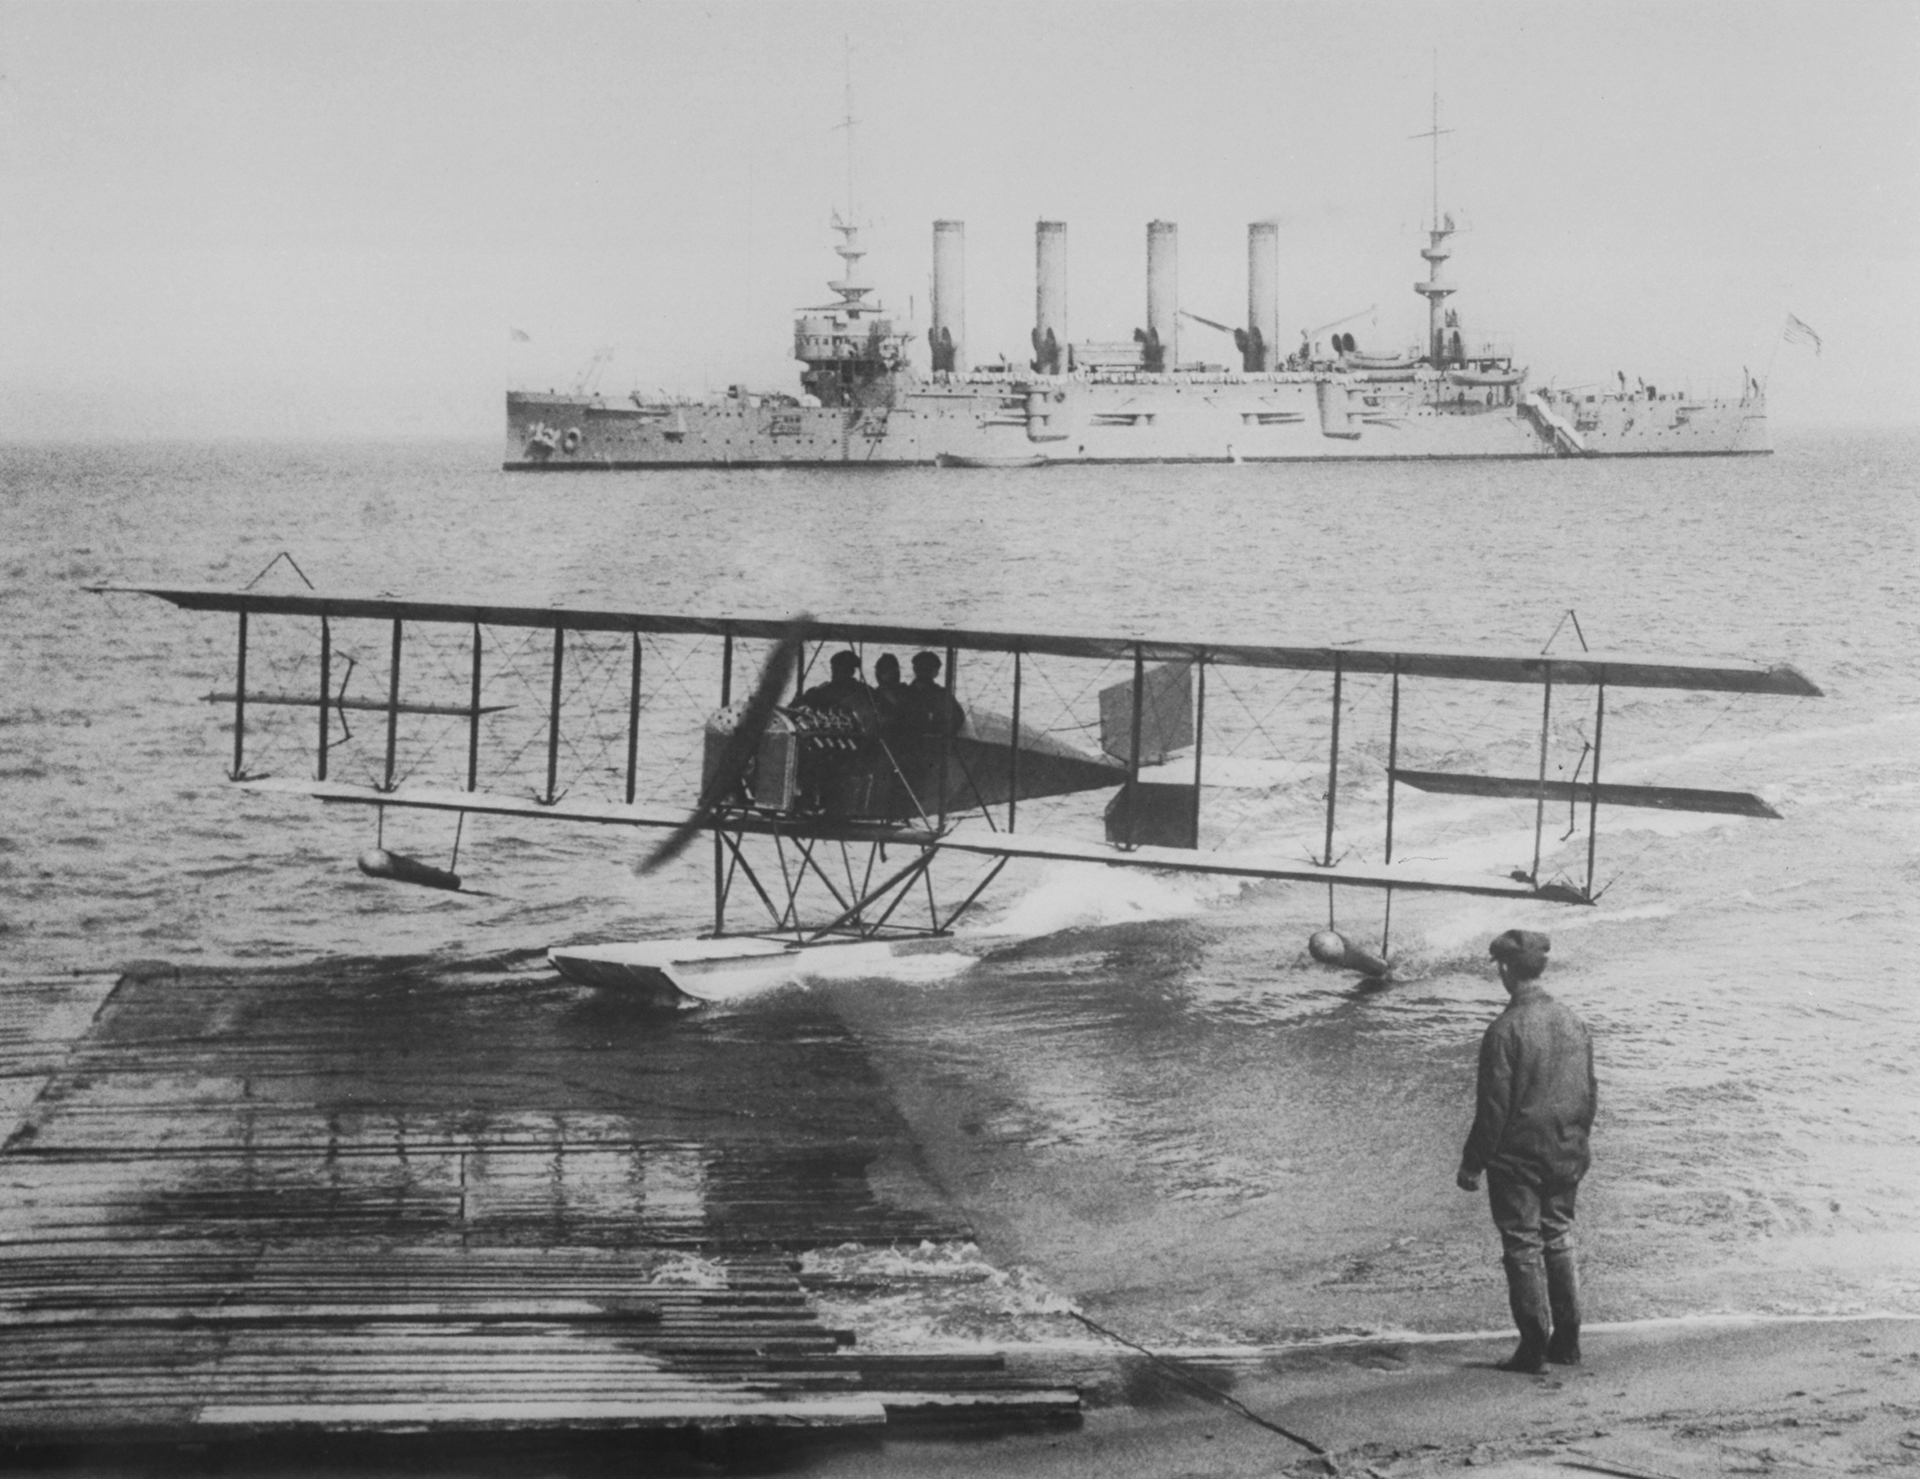 The Model G at the 1915 Panama-Pacific International Exposition in San Francisco